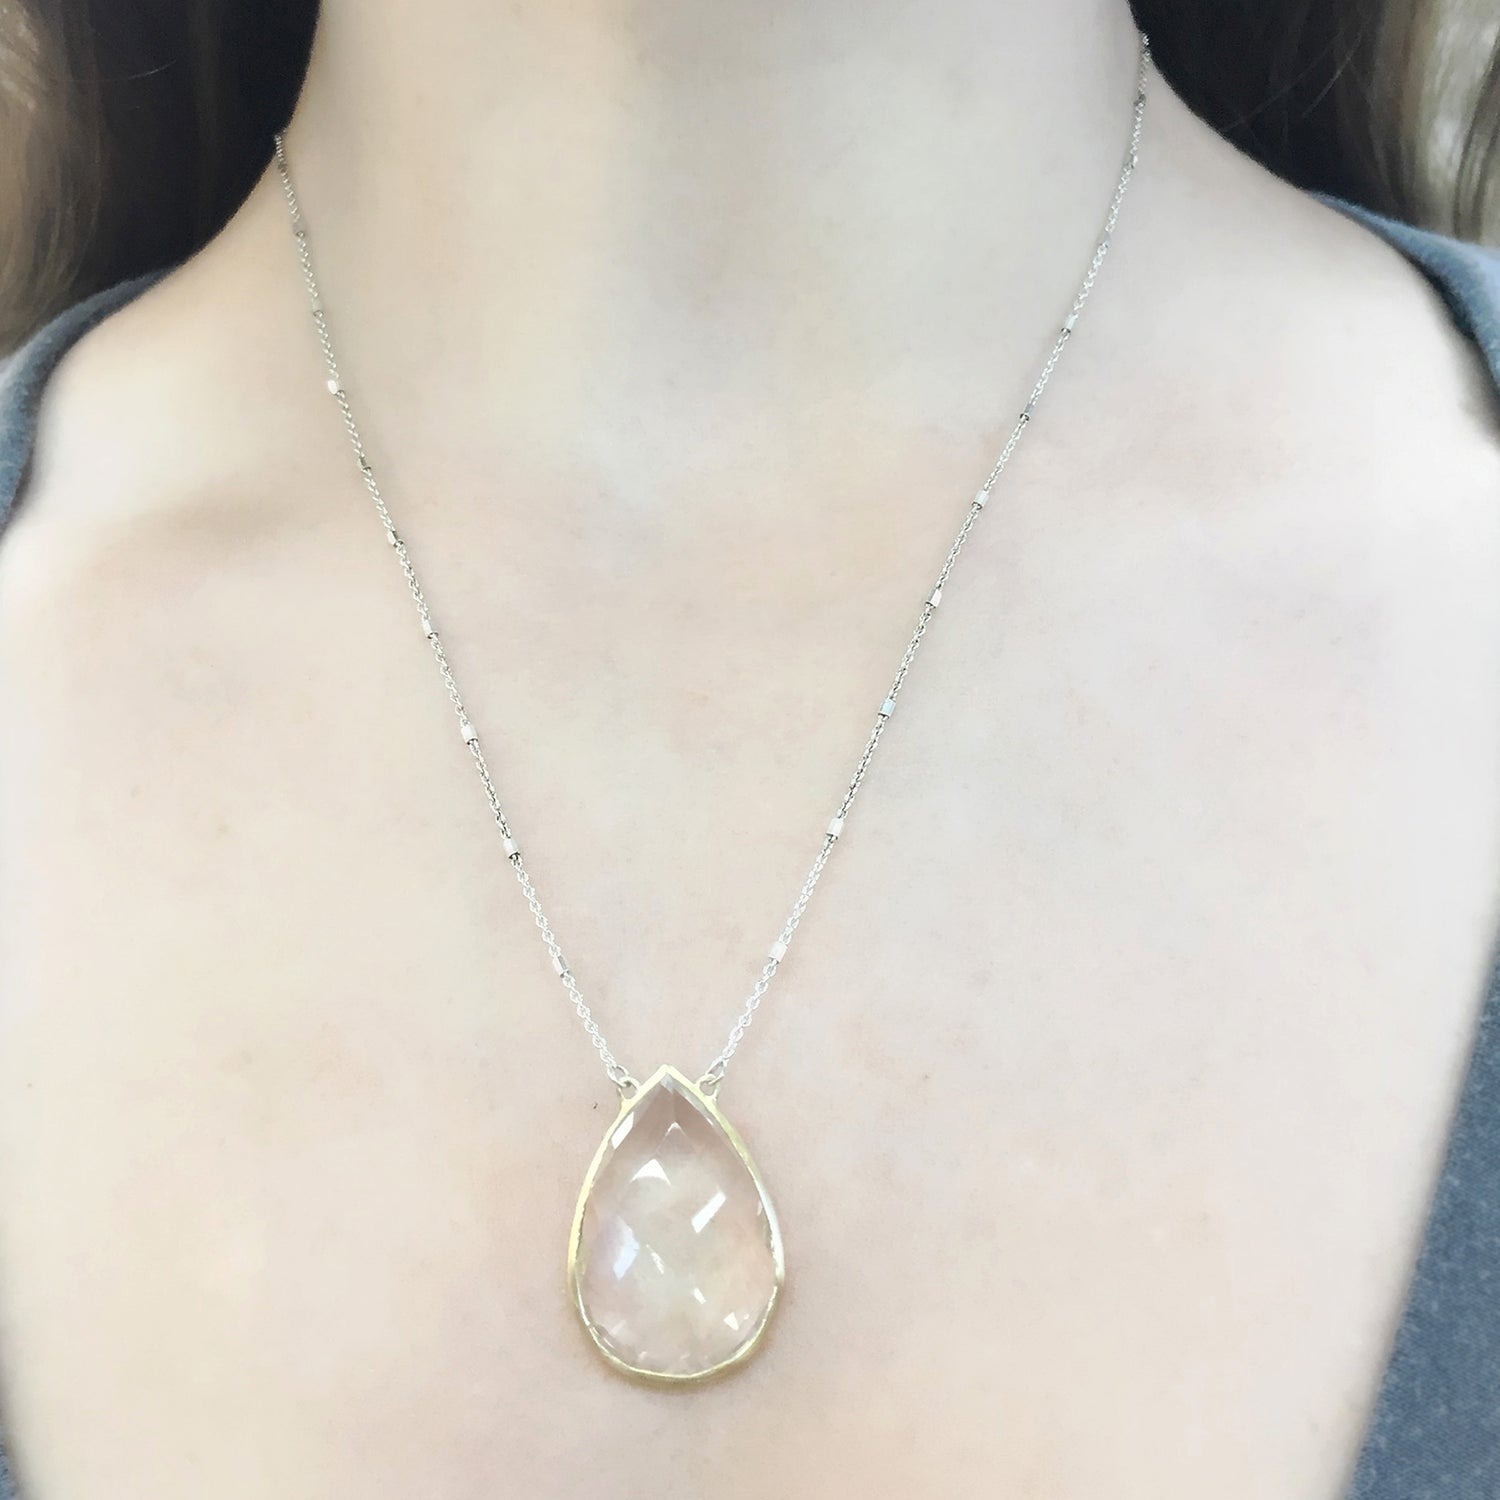 Gold and Silver Crystal Quartz Teardrop Necklace